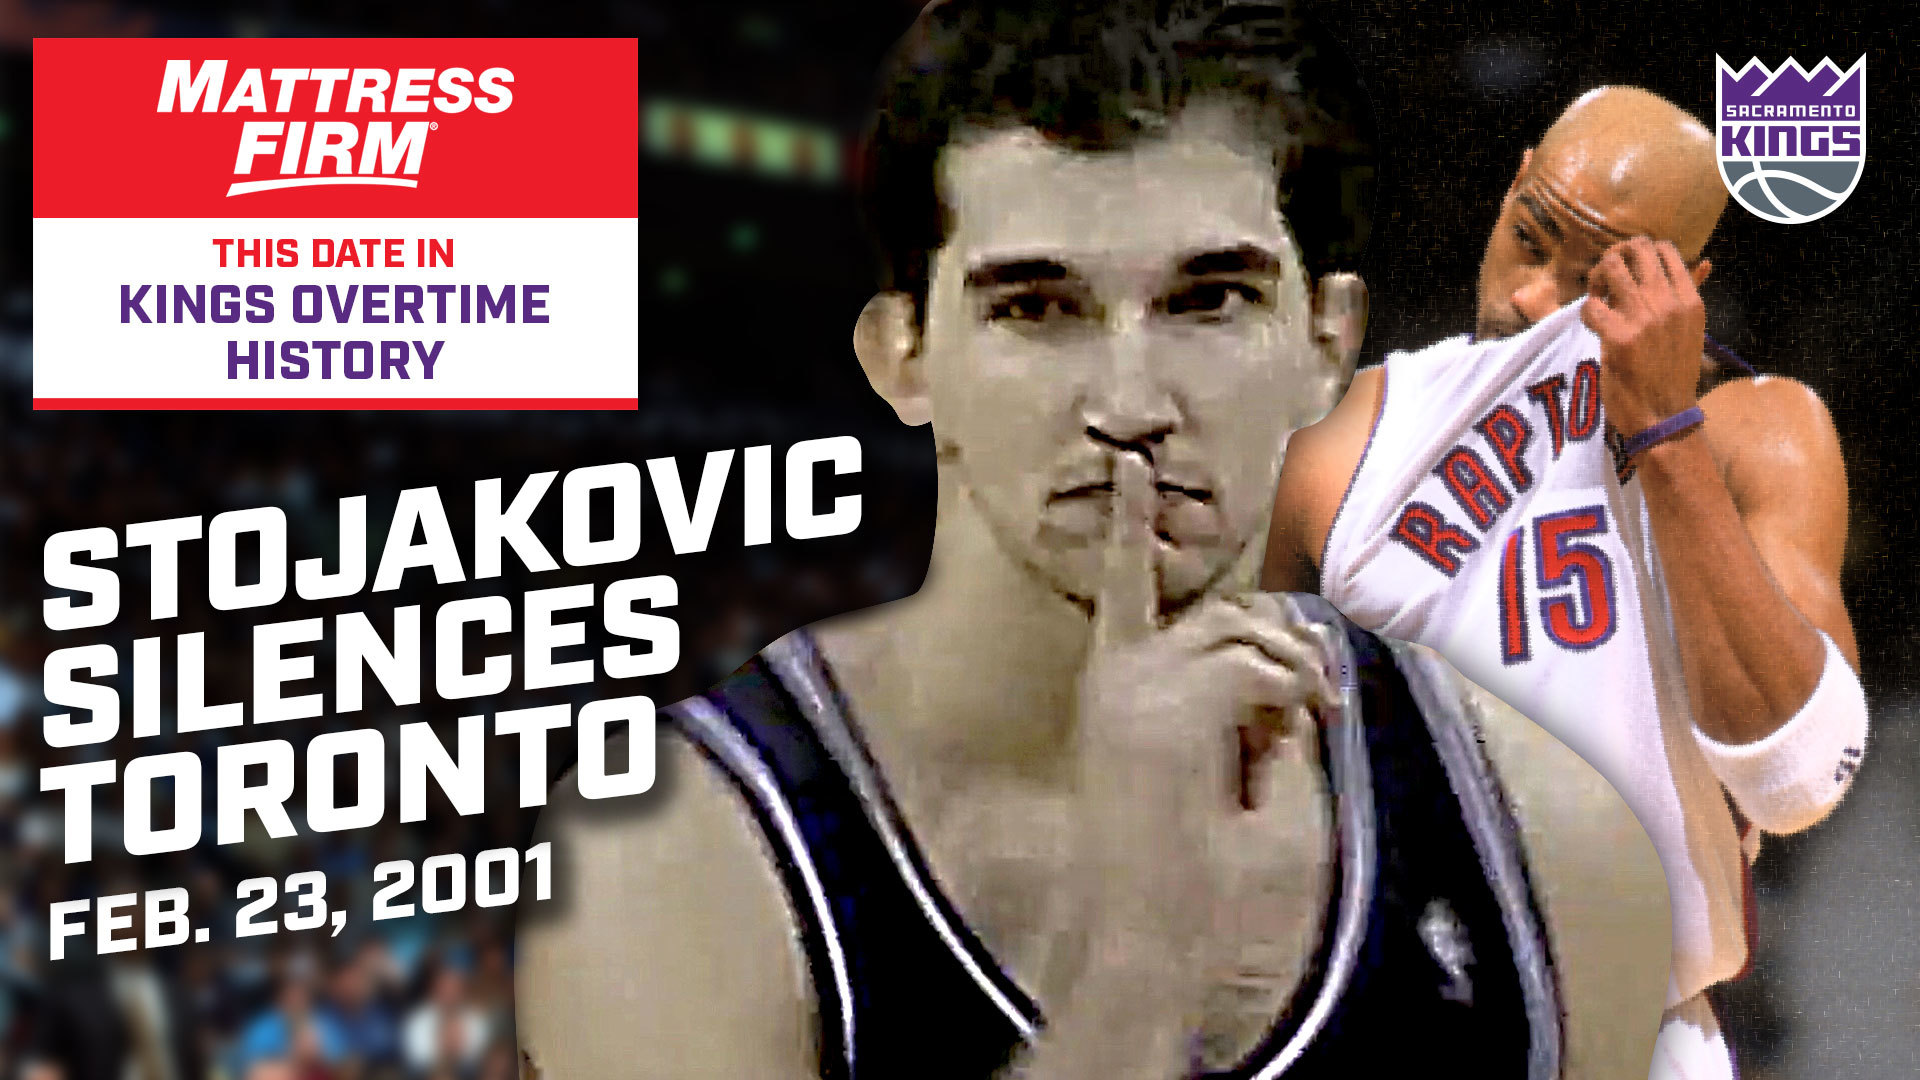 This Date in Kings OT History: Stojakovic Silences Toronto